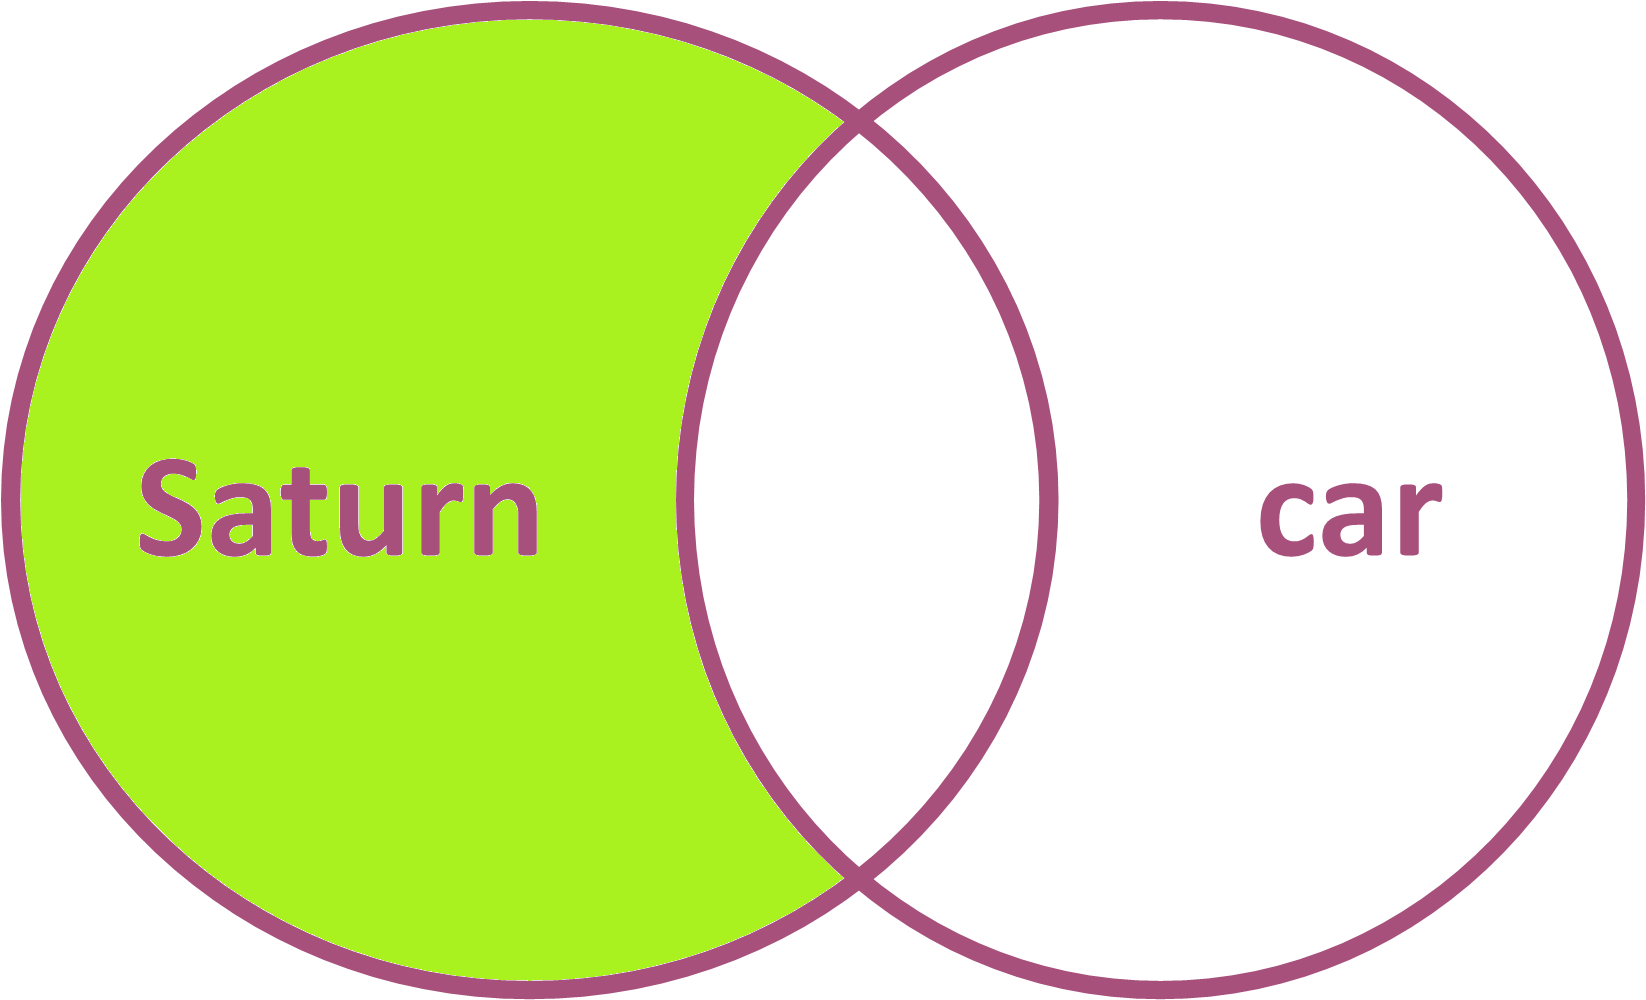 NOT Boolean Venn Diagram